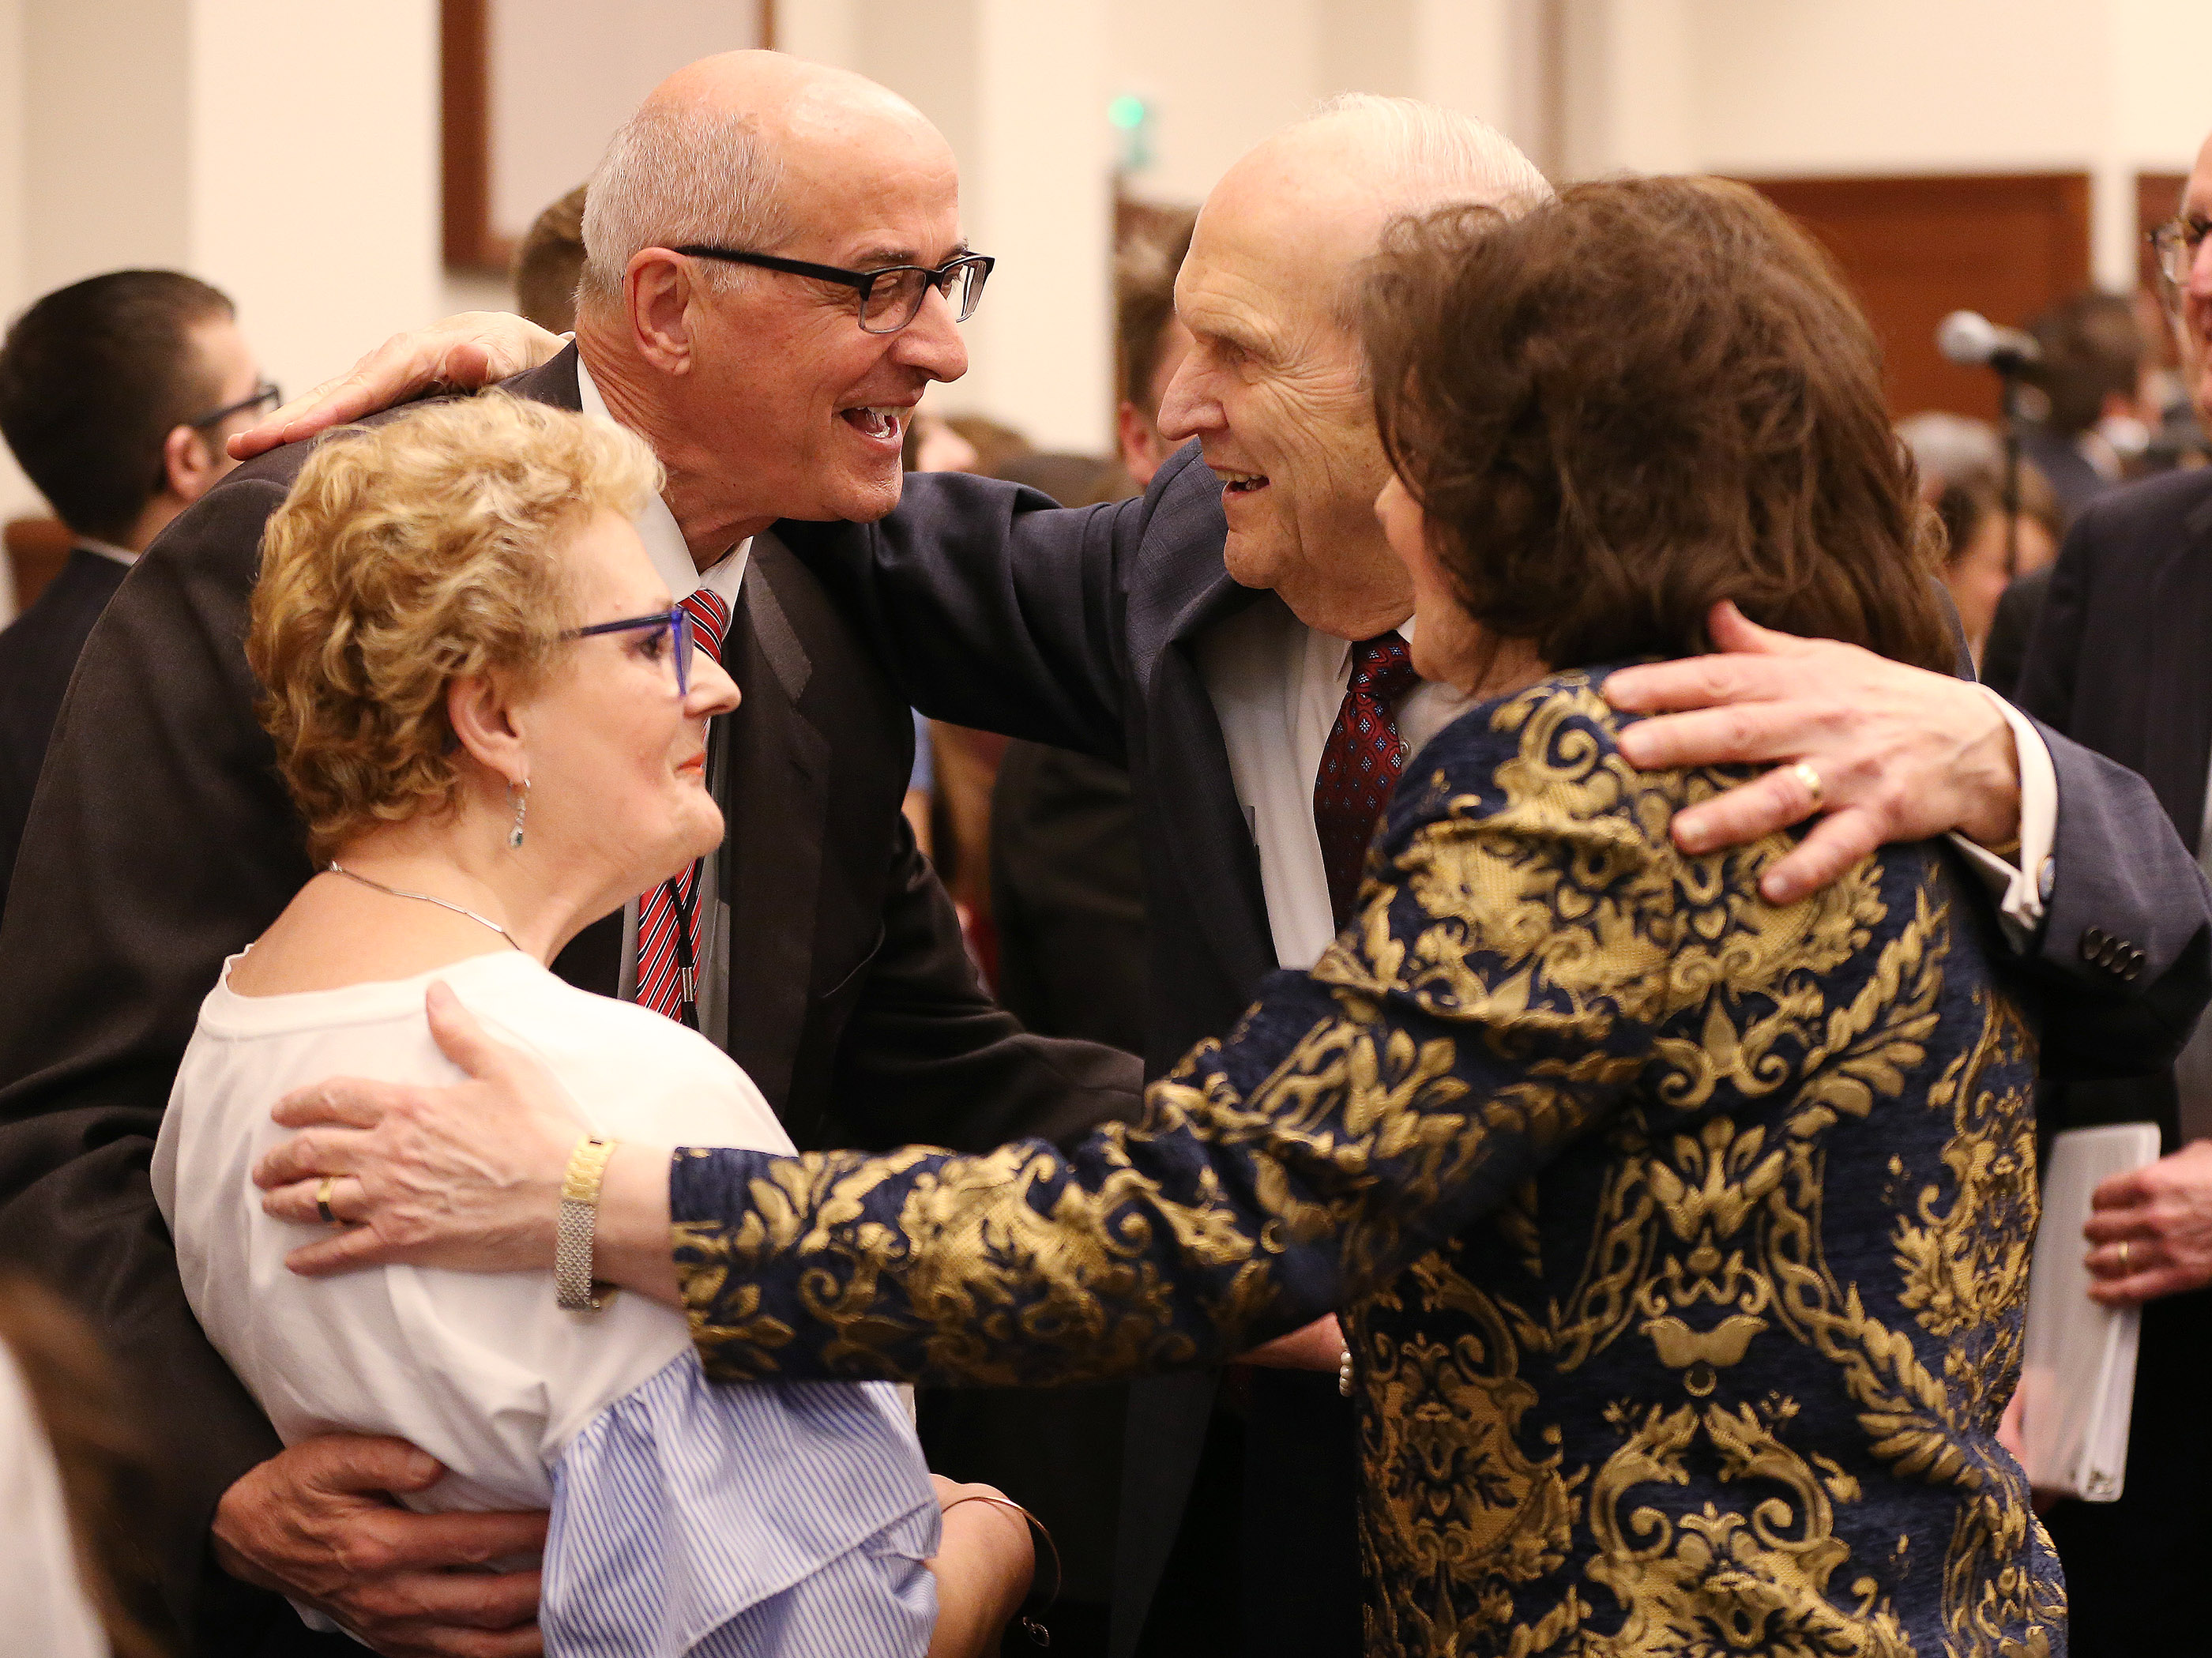 President Russell M. Nelson of The Church of Jesus Christ of Latter-day Saints and his wife, Sister Wendy Nelson, greet Raymond and Anita Castellani after a youth devotional in Rome, Italy, on Saturday, March 9, 2019.